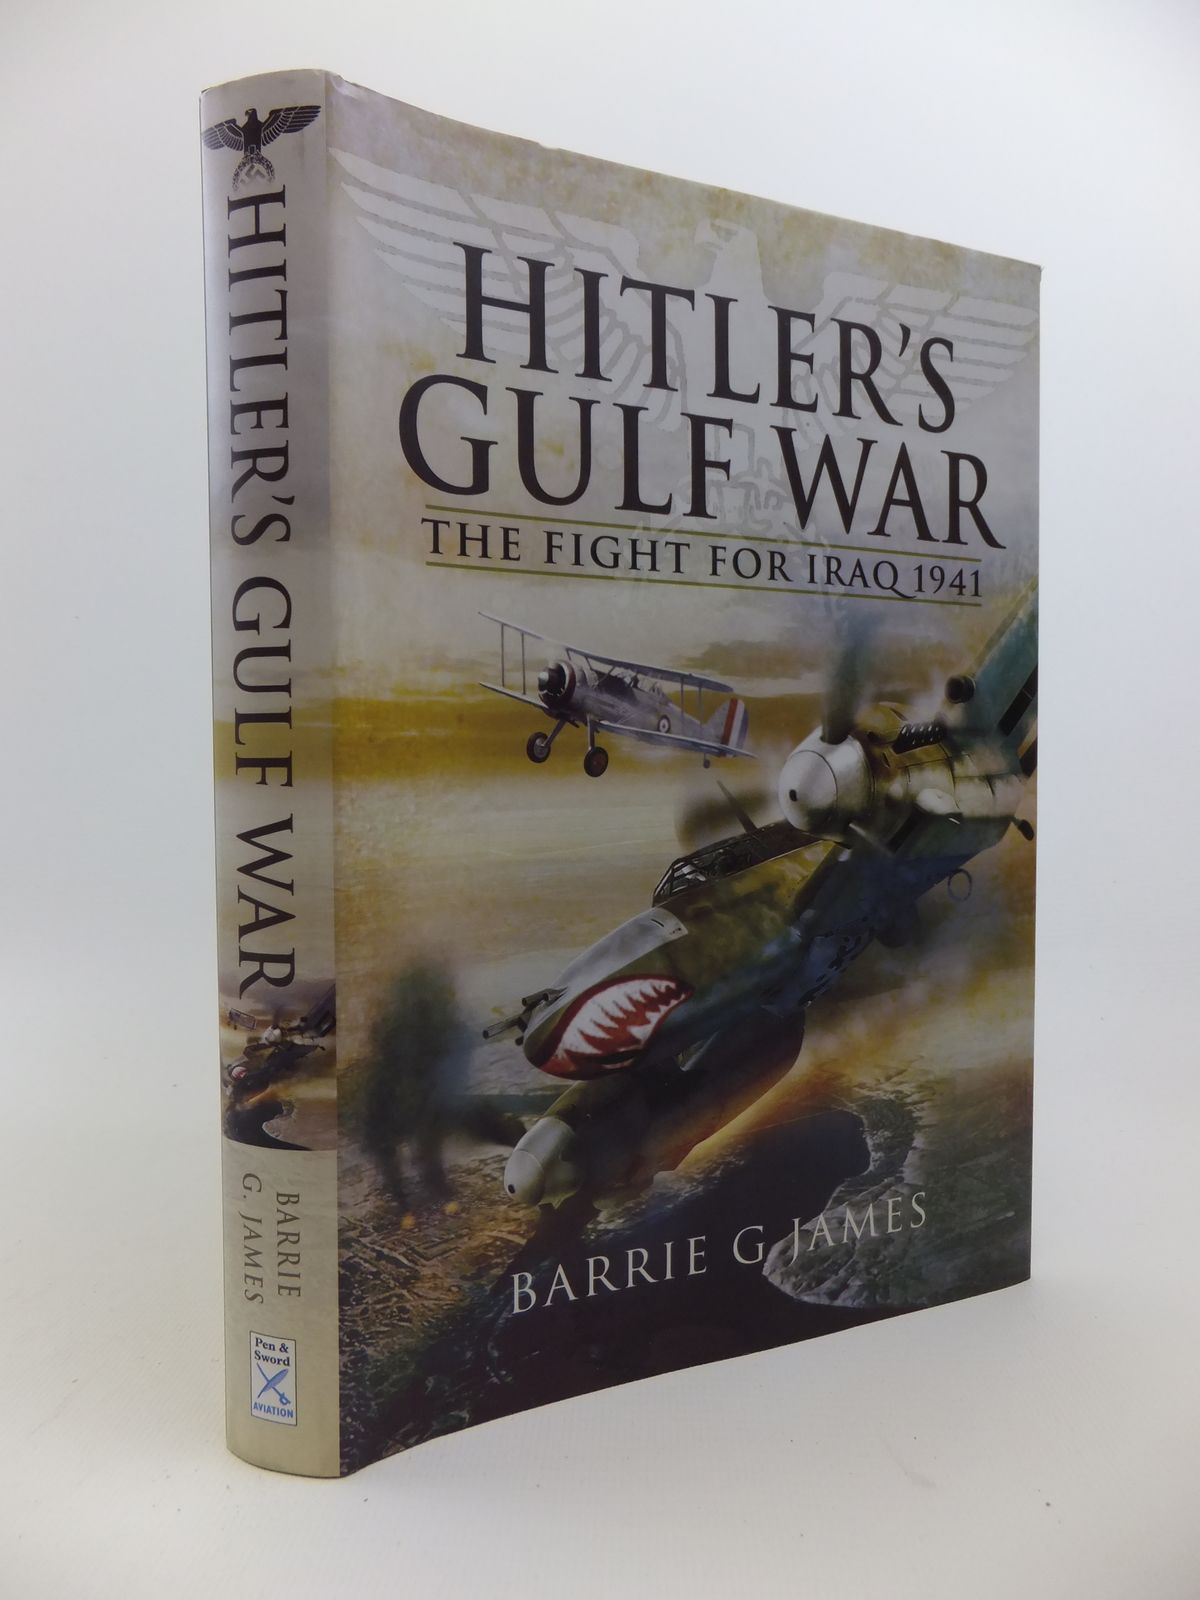 Photo of HITLER'S GULF WAR written by James, Barrie G. published by Pen & Sword Aviation (STOCK CODE: 1208267)  for sale by Stella & Rose's Books